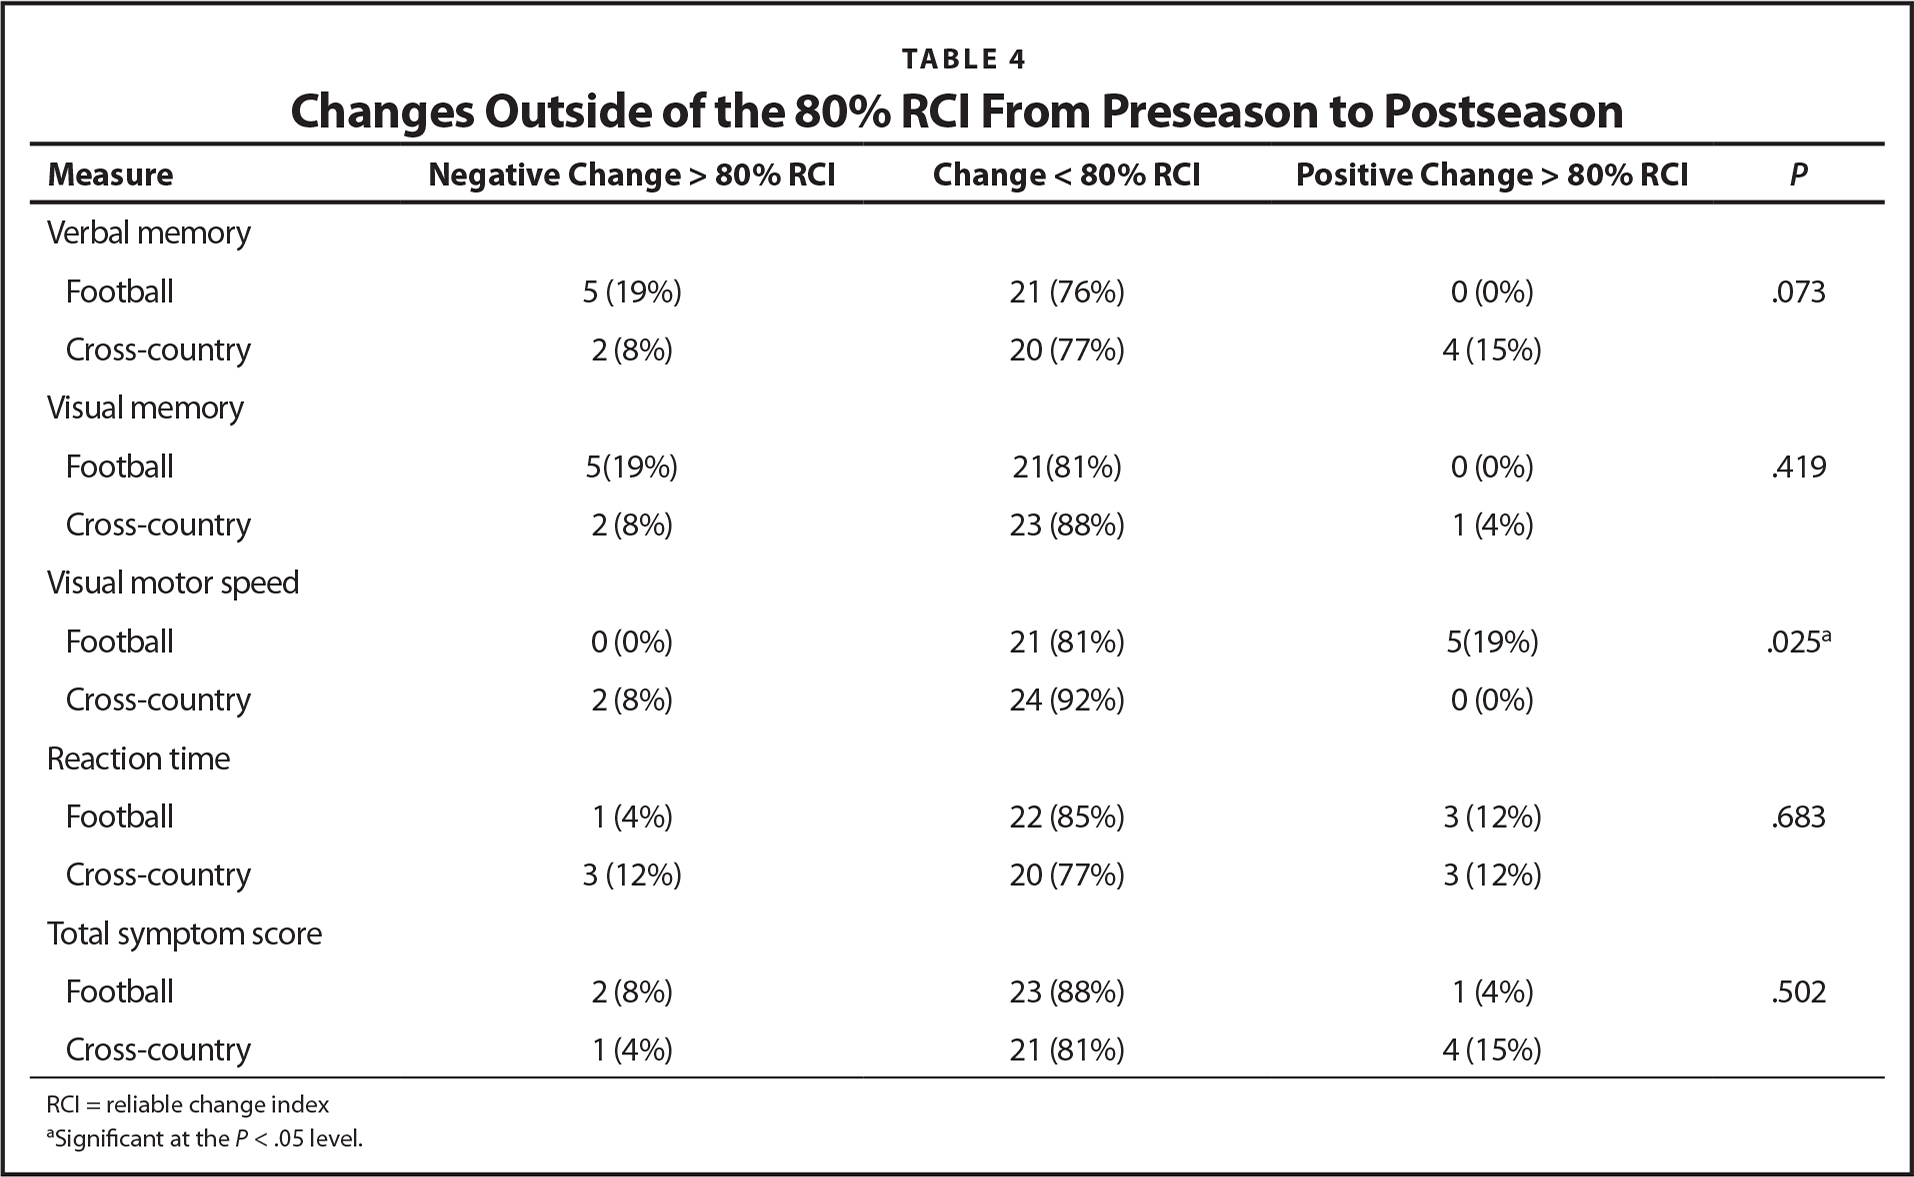 Changes Outside of the 80% RCI From Preseason to Postseason